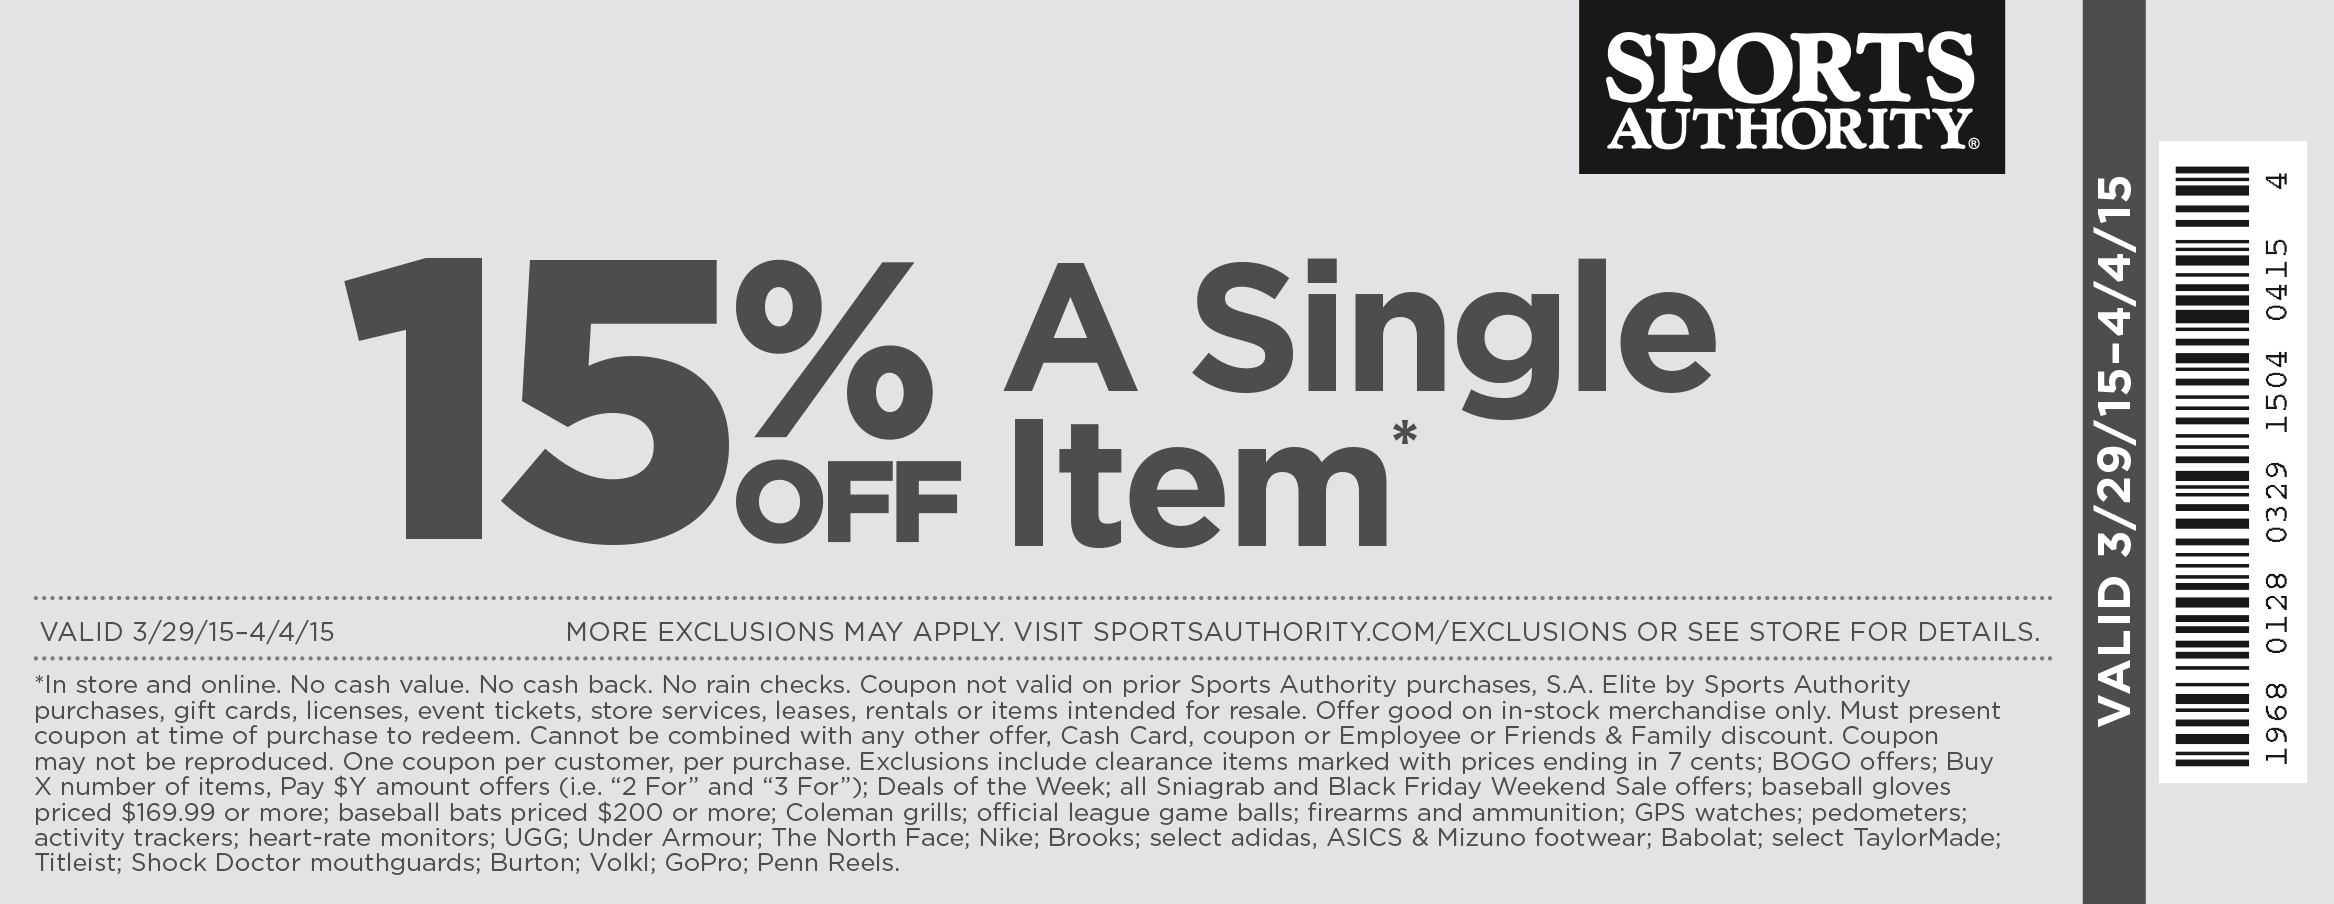 Sports Authority Coupon June 2017 15% off a single item at Sports Authority, ditto online